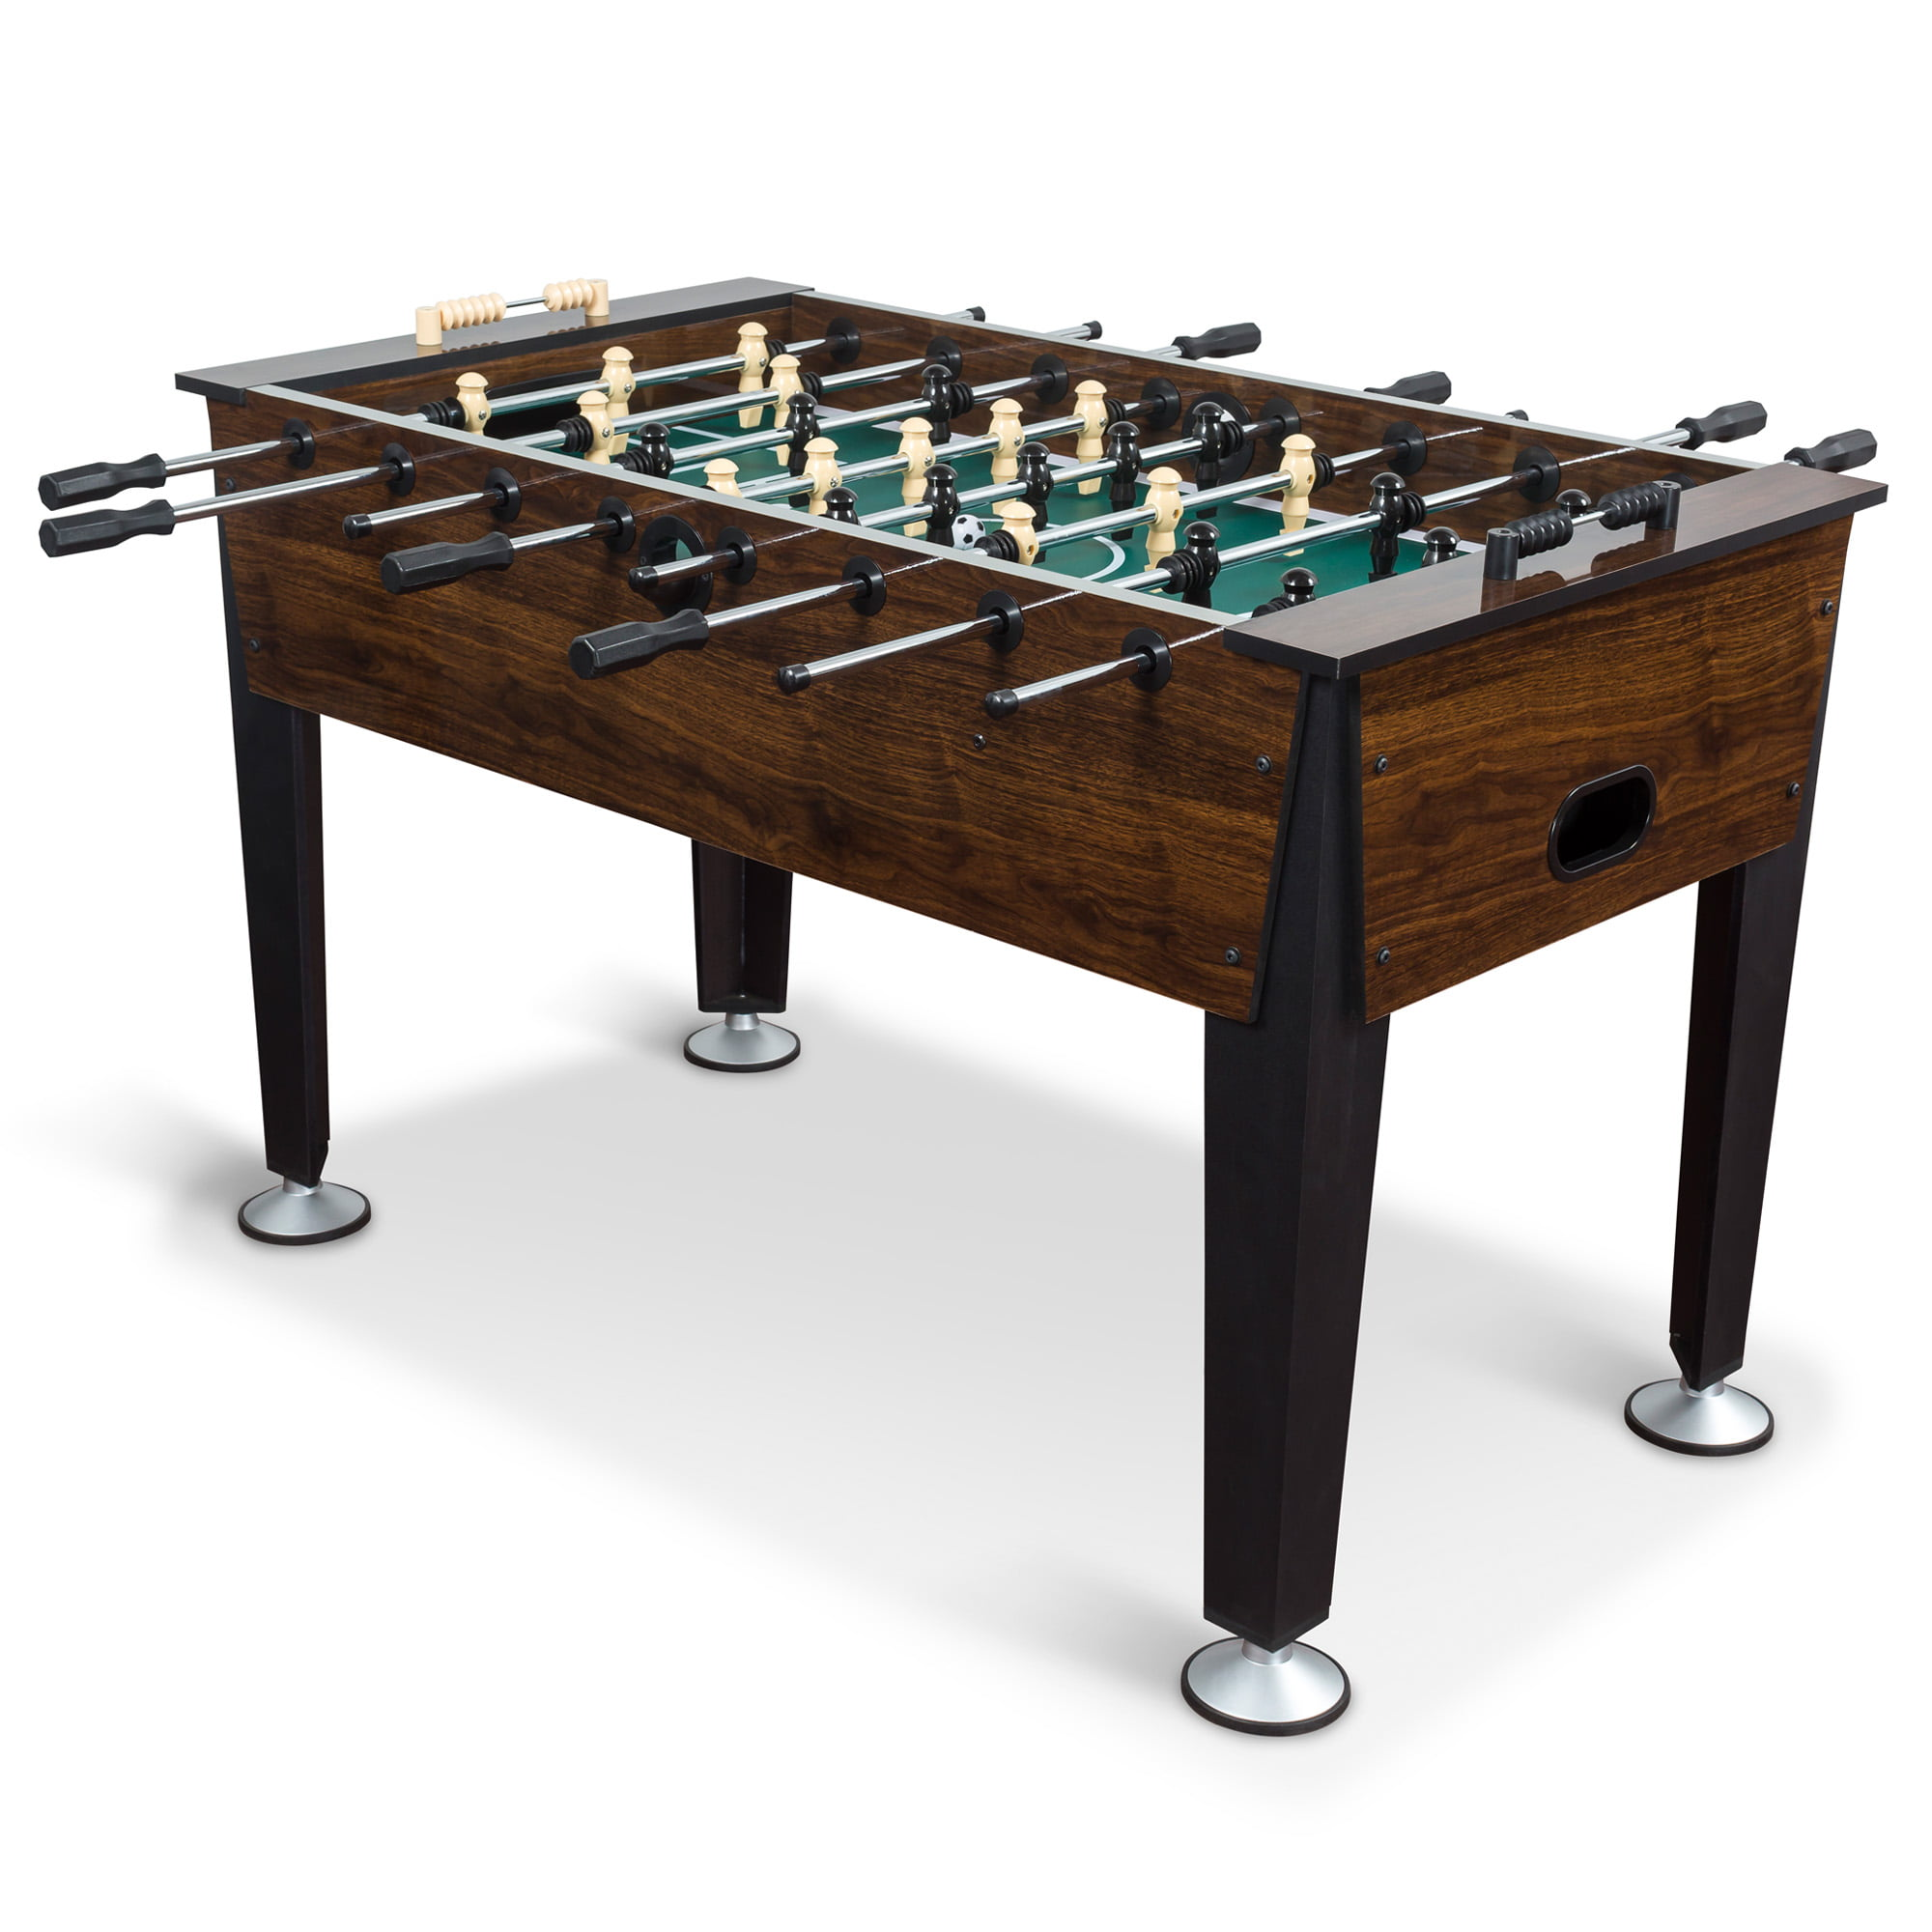 Clic Sport Newcastle Foosball Table Brown Wood Finish 54 In Official Compeion Sized Soccer